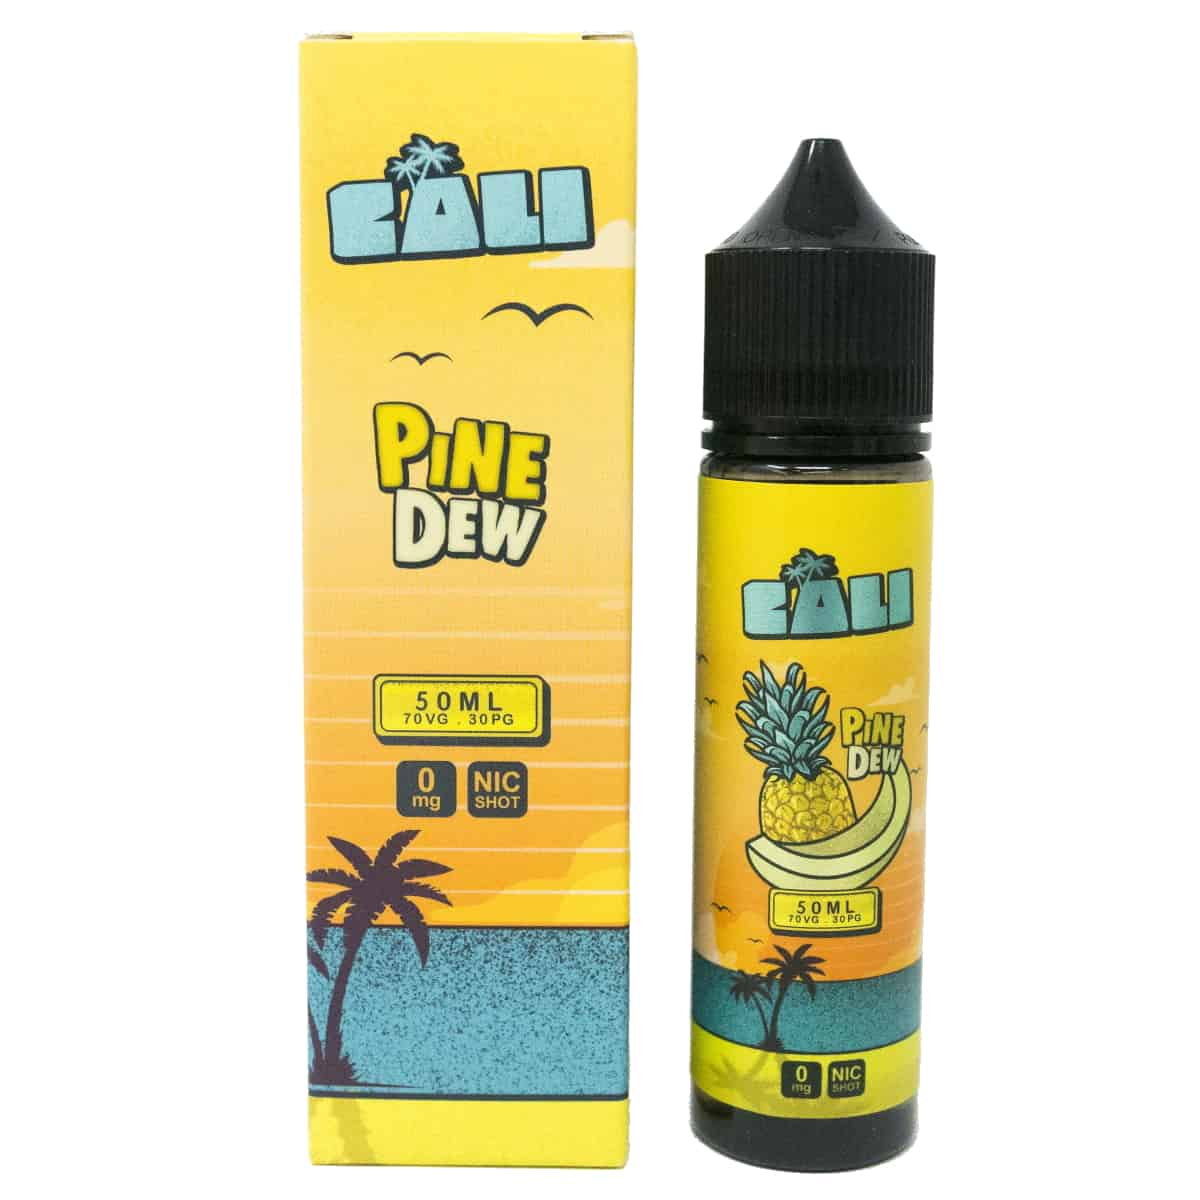 Pine Dew Cali Shortfill 50ml